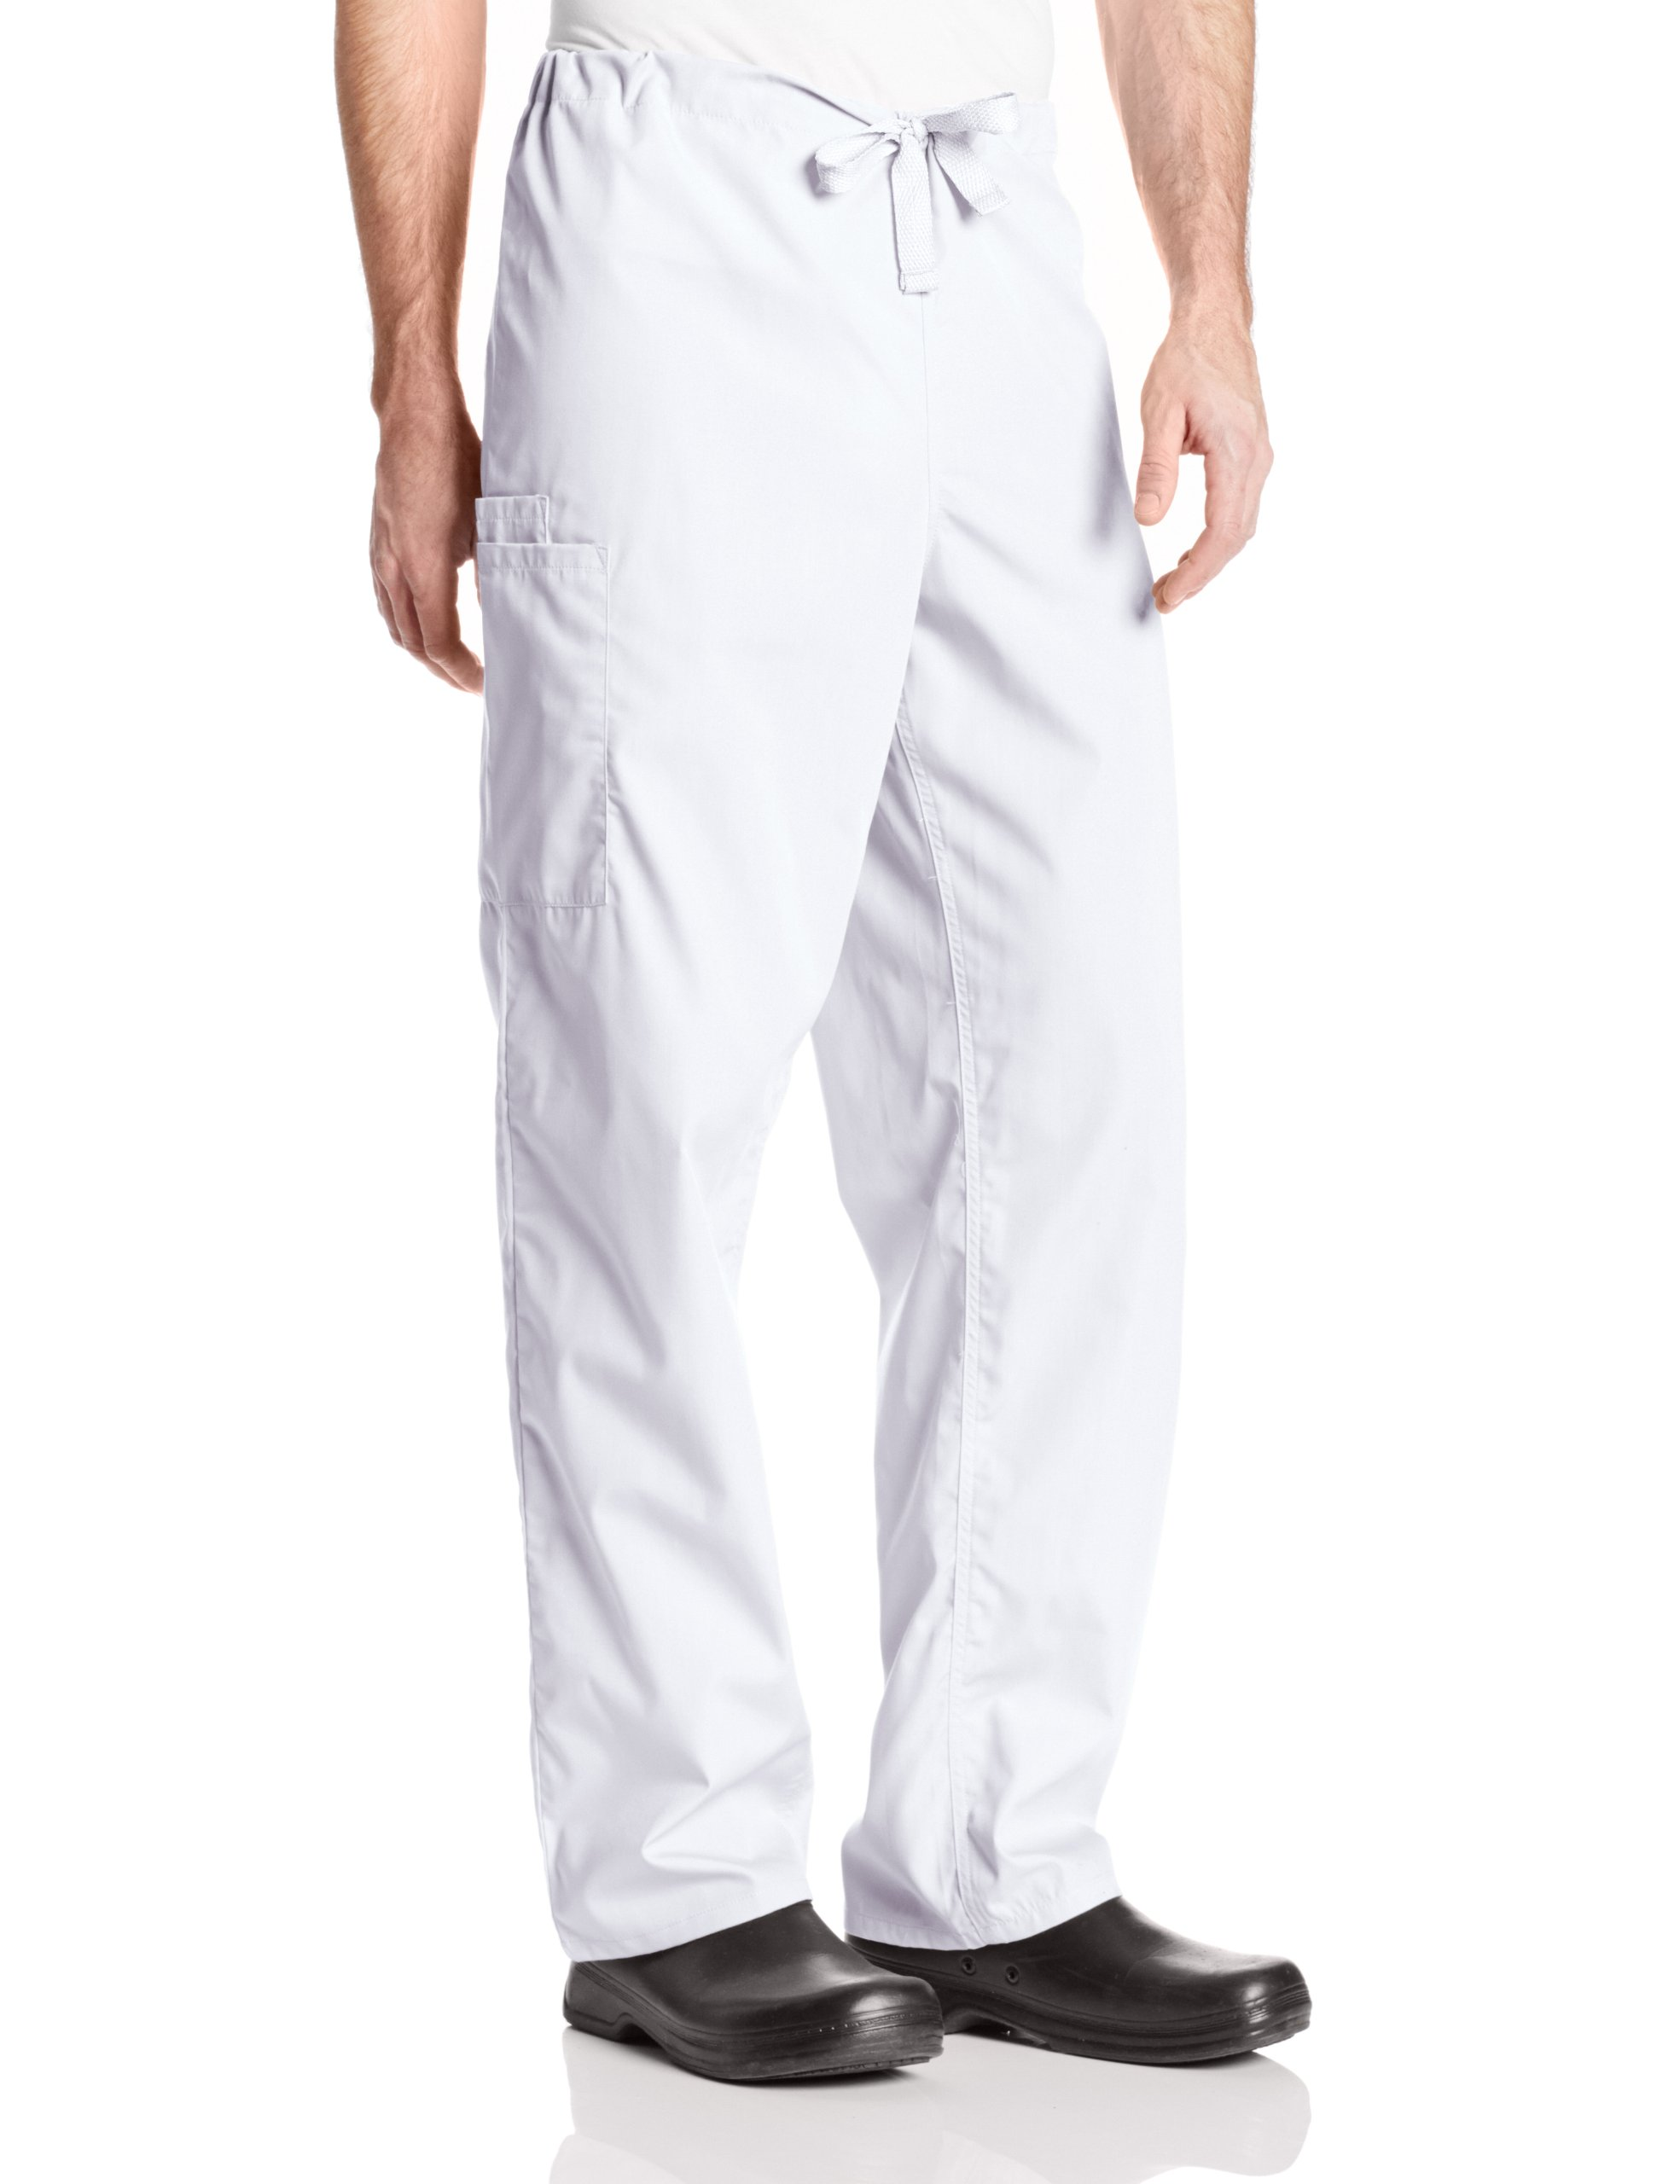 Cherokee Big Originals Unisex Drawstring Cargo Scrubs Pant, White, X-Large Tall by Cherokee